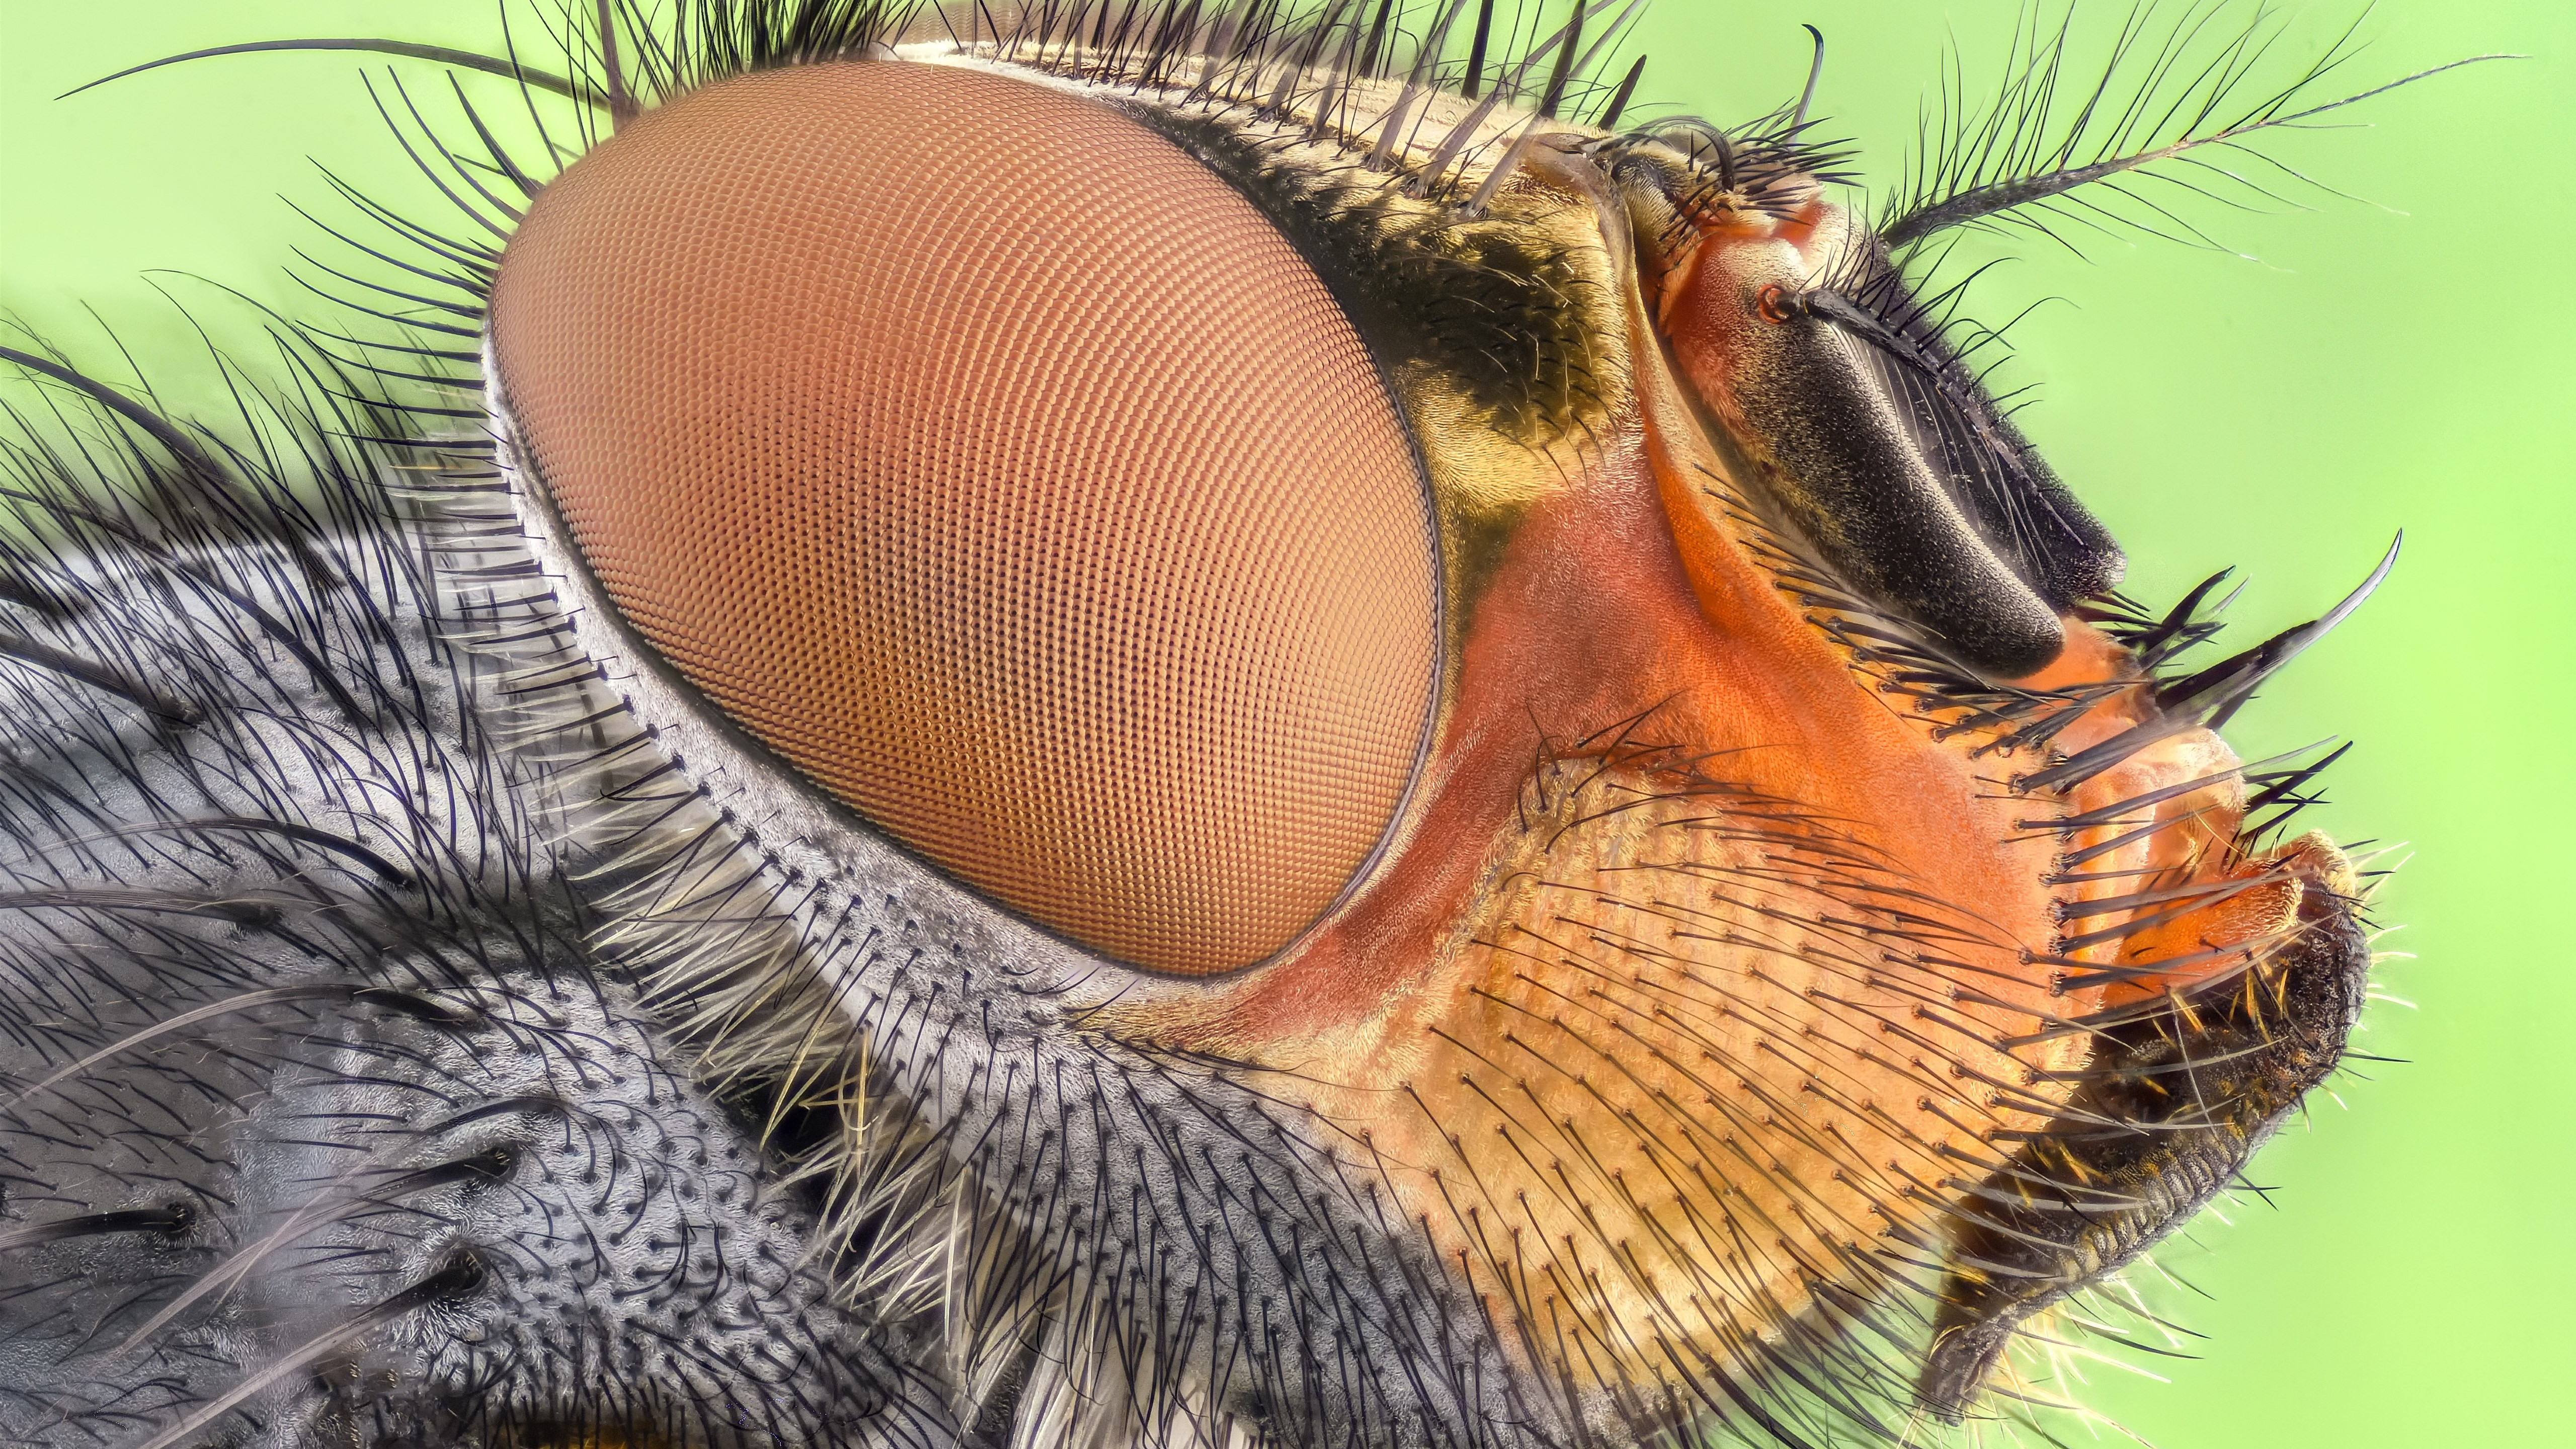 Close up insect portrait wallpaper 5120x2880